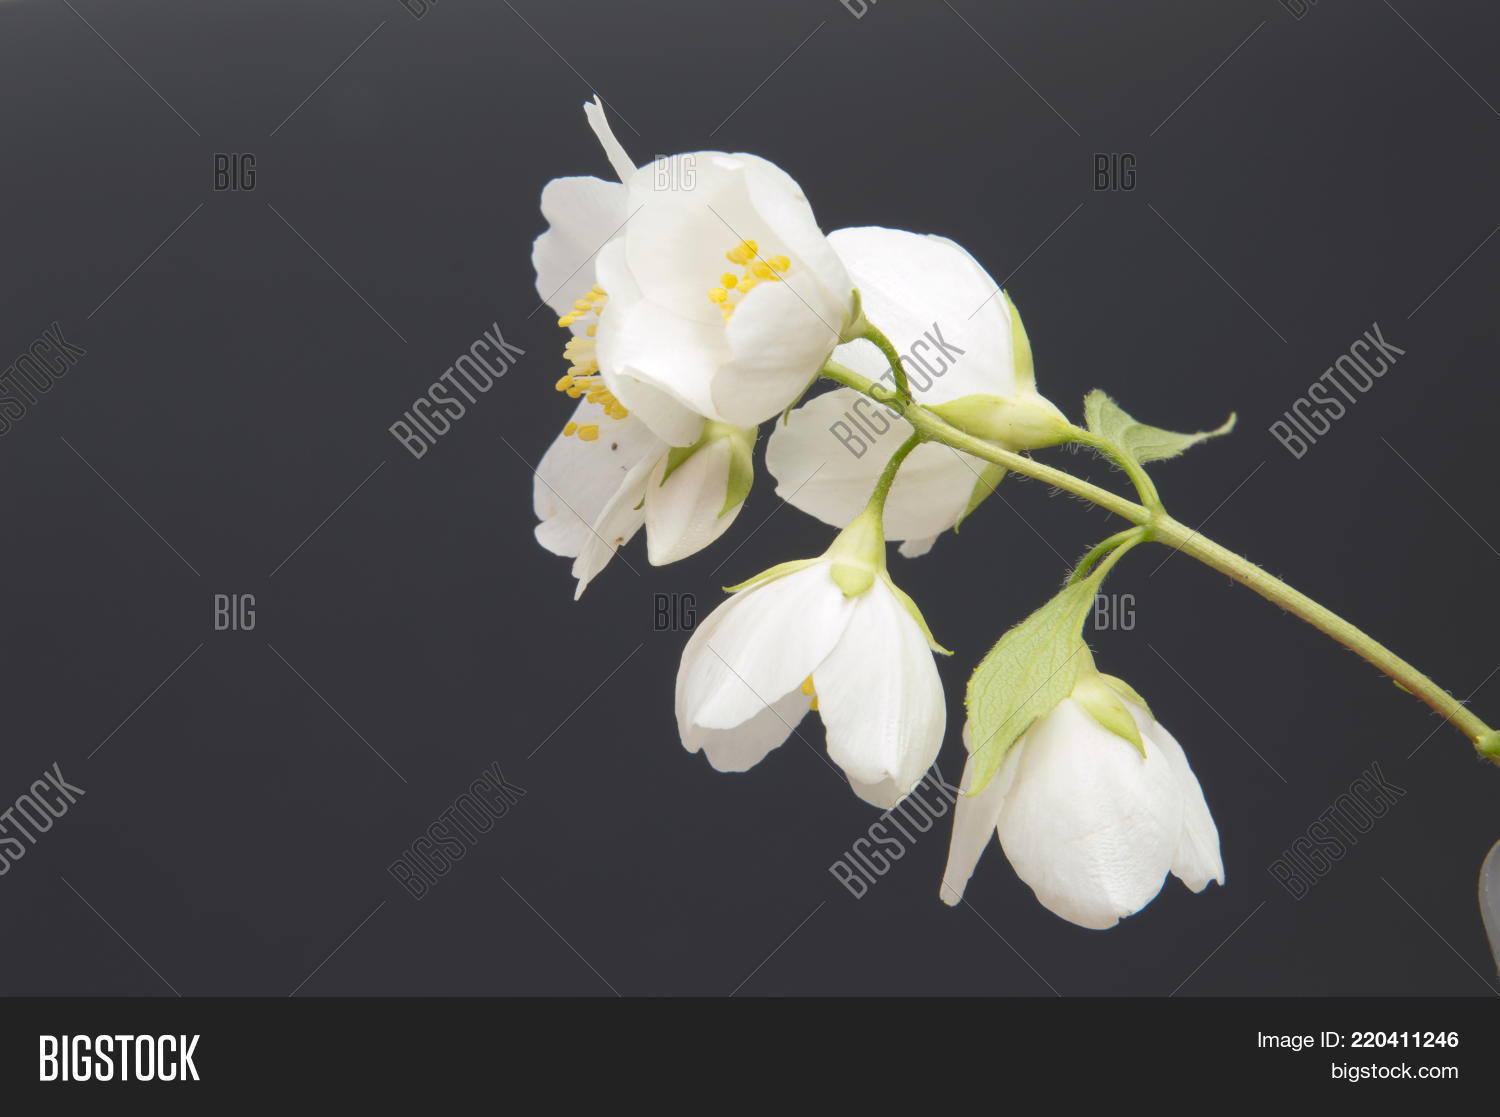 Branch Jasmine Flower Image Photo Free Trial Bigstock